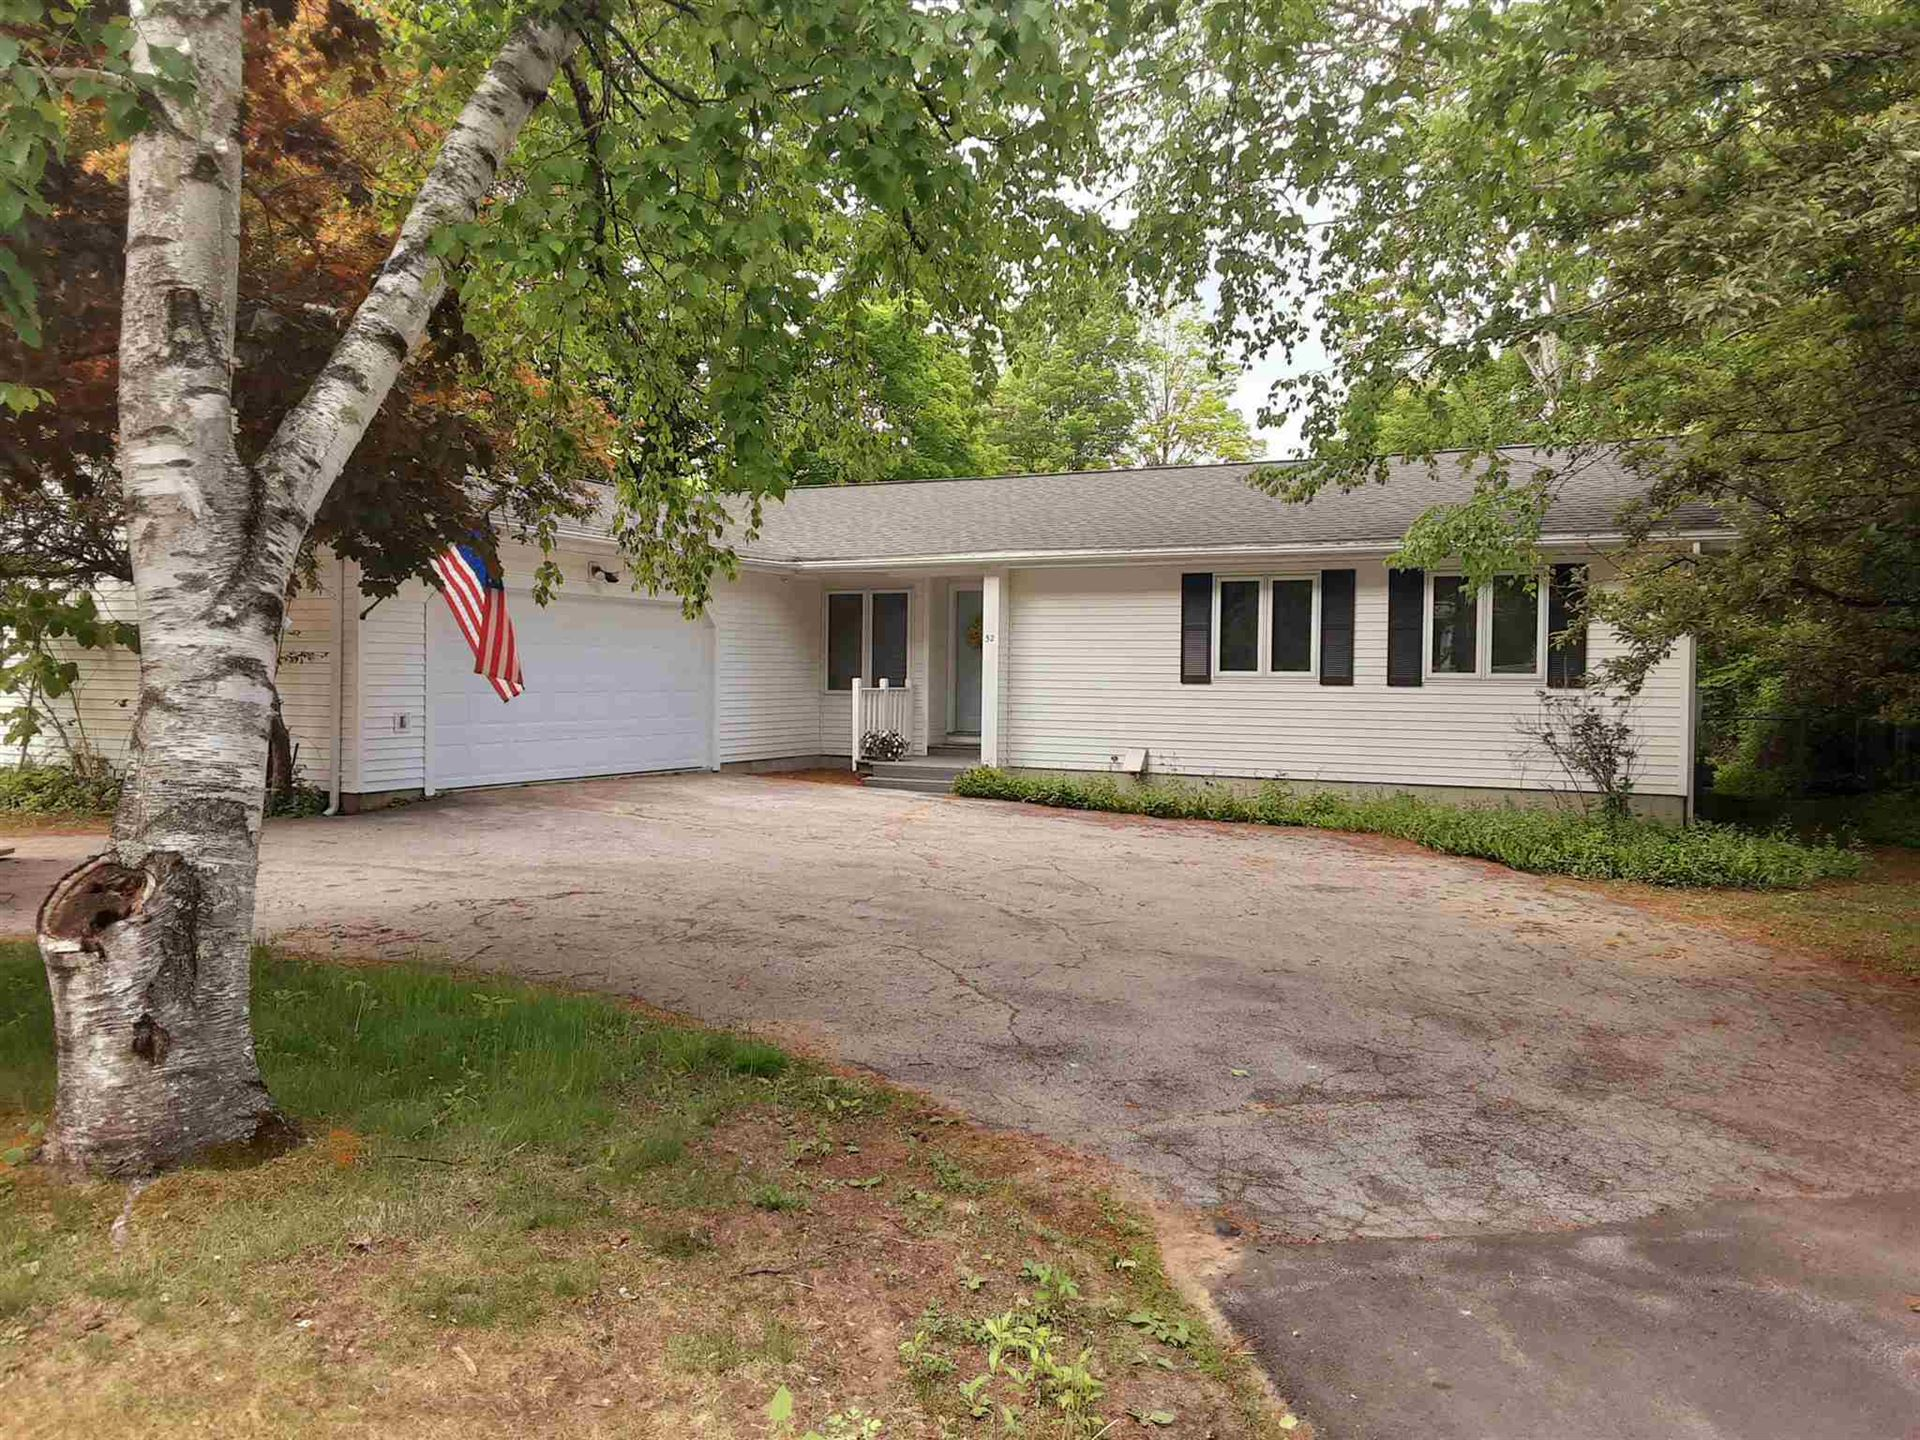 52 Community Drive, Concord, NH 03303 - #: 4807948